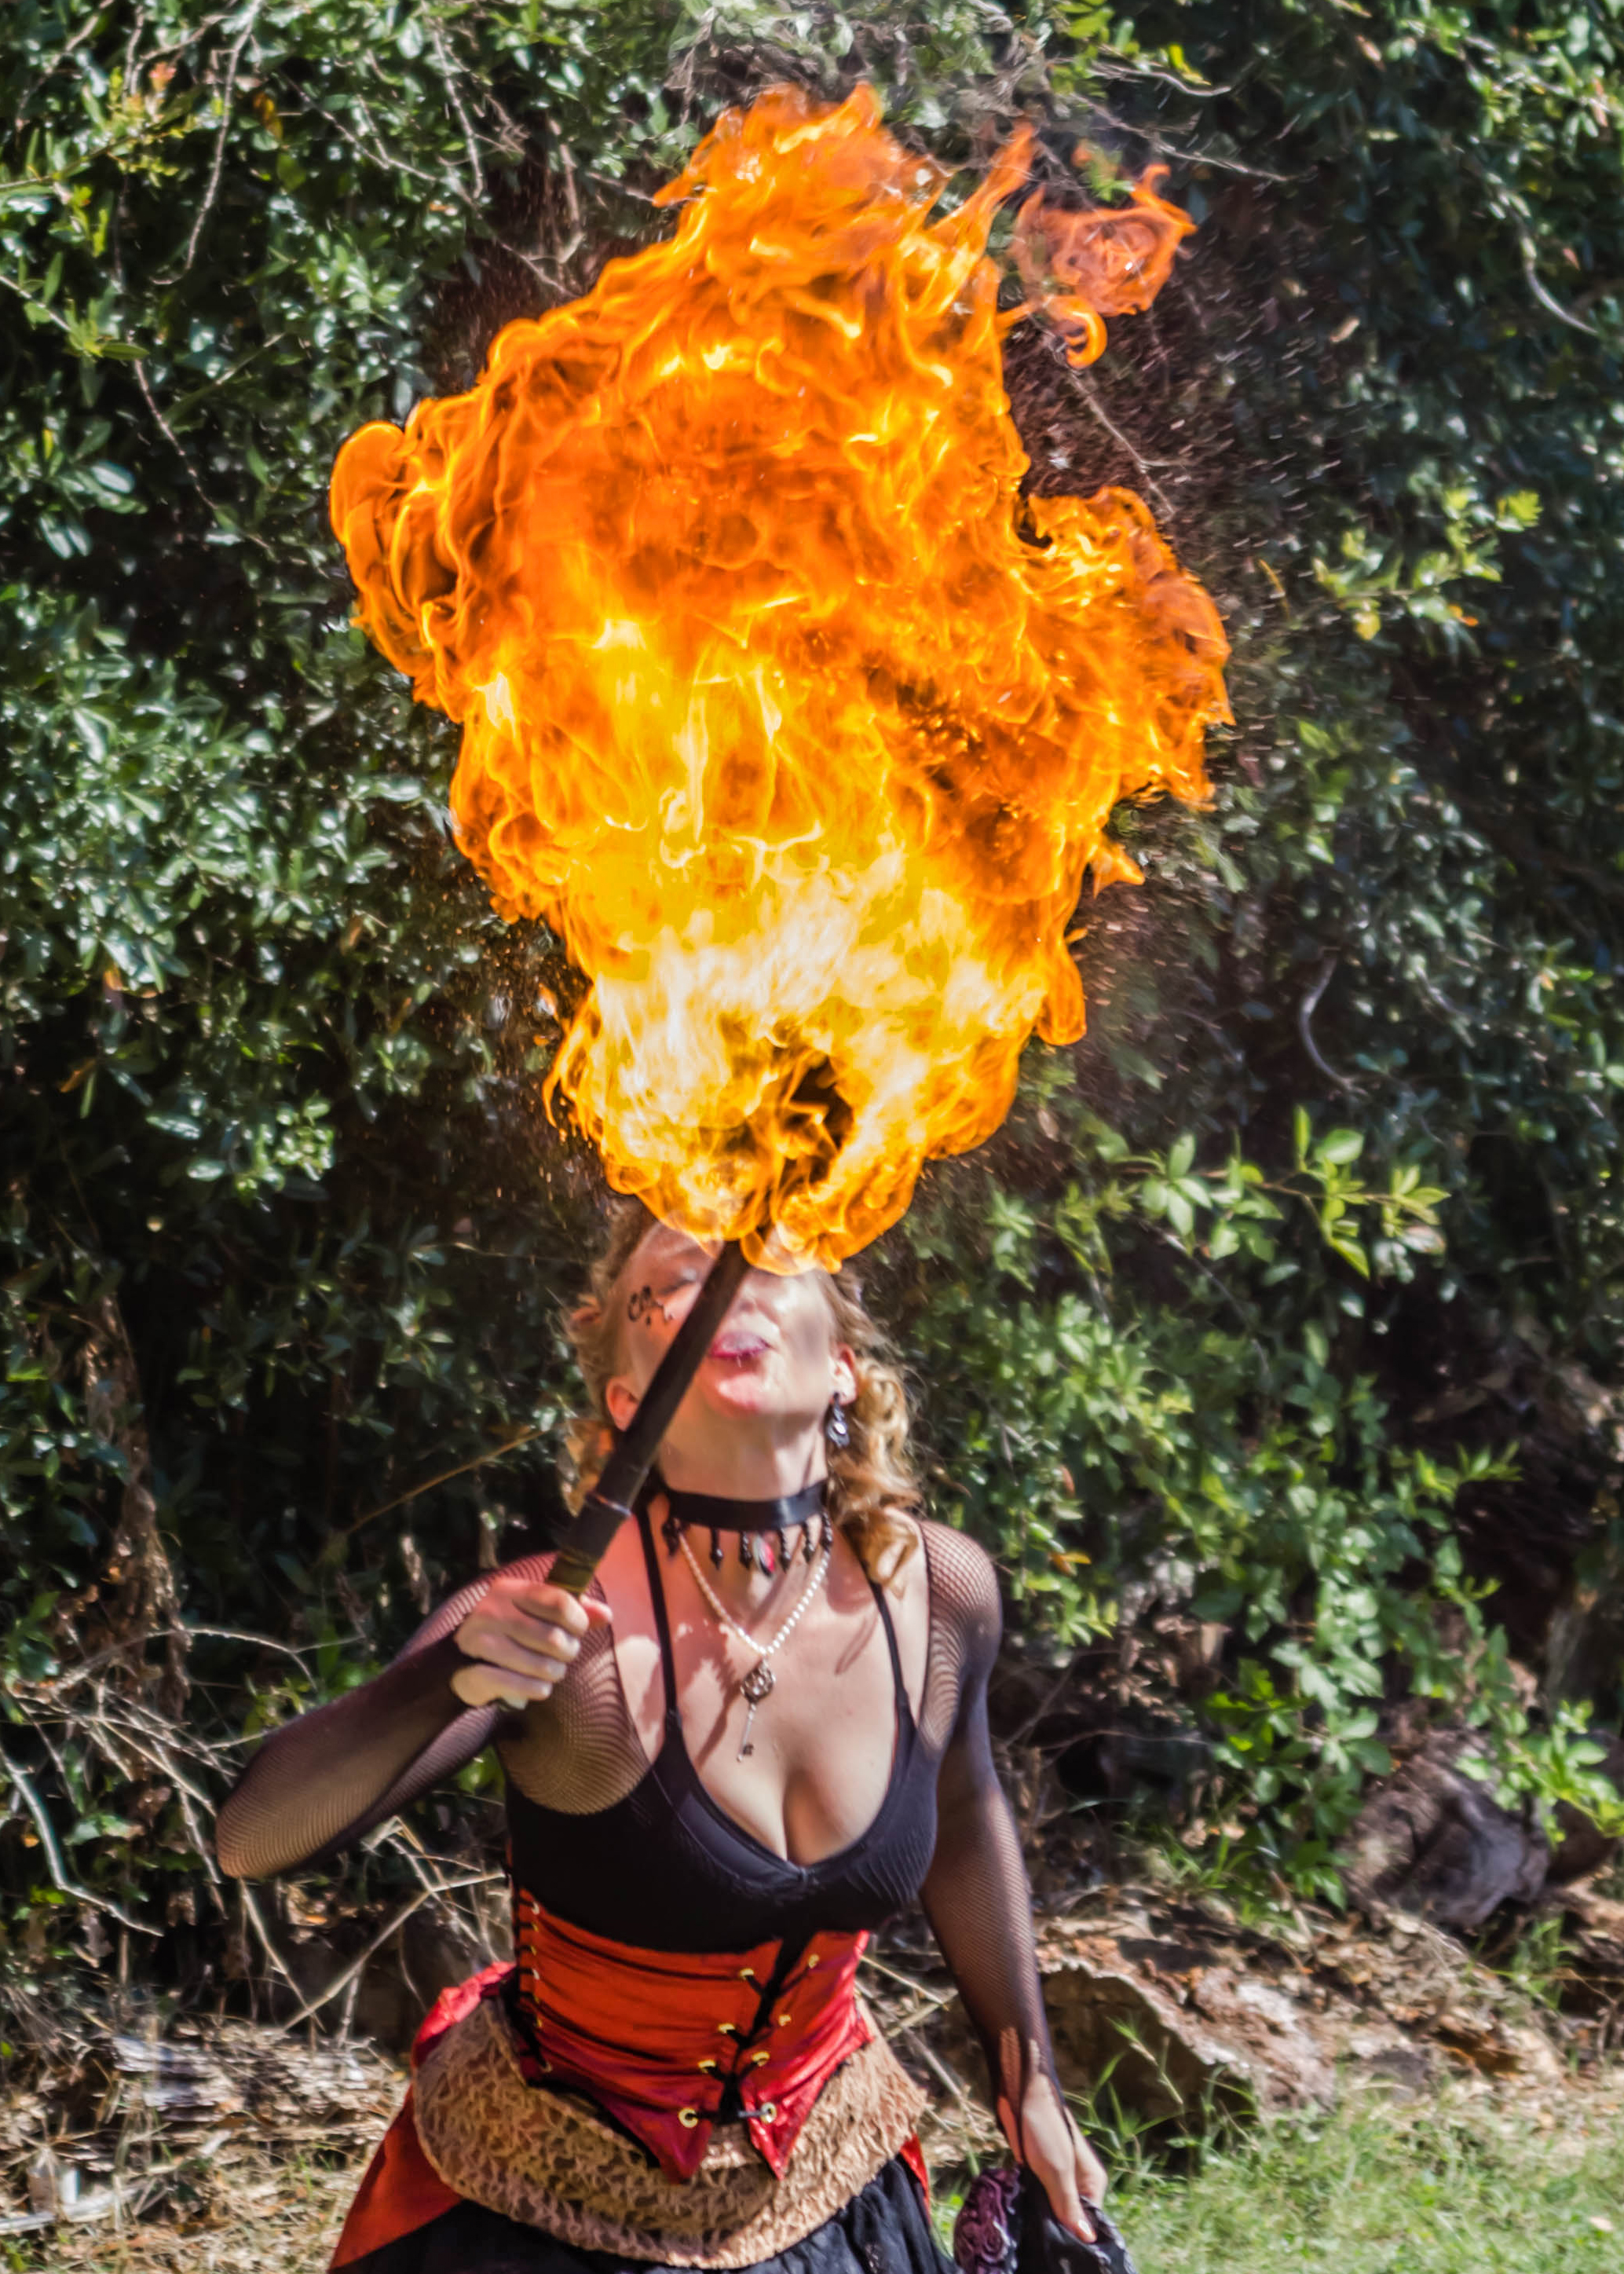 Cimorene (Dion Leonhard) of Phantasmagoria breathes fire at Reninger's Industrial Steampunk Show in Mt. Dora Oct. 17, 2015.